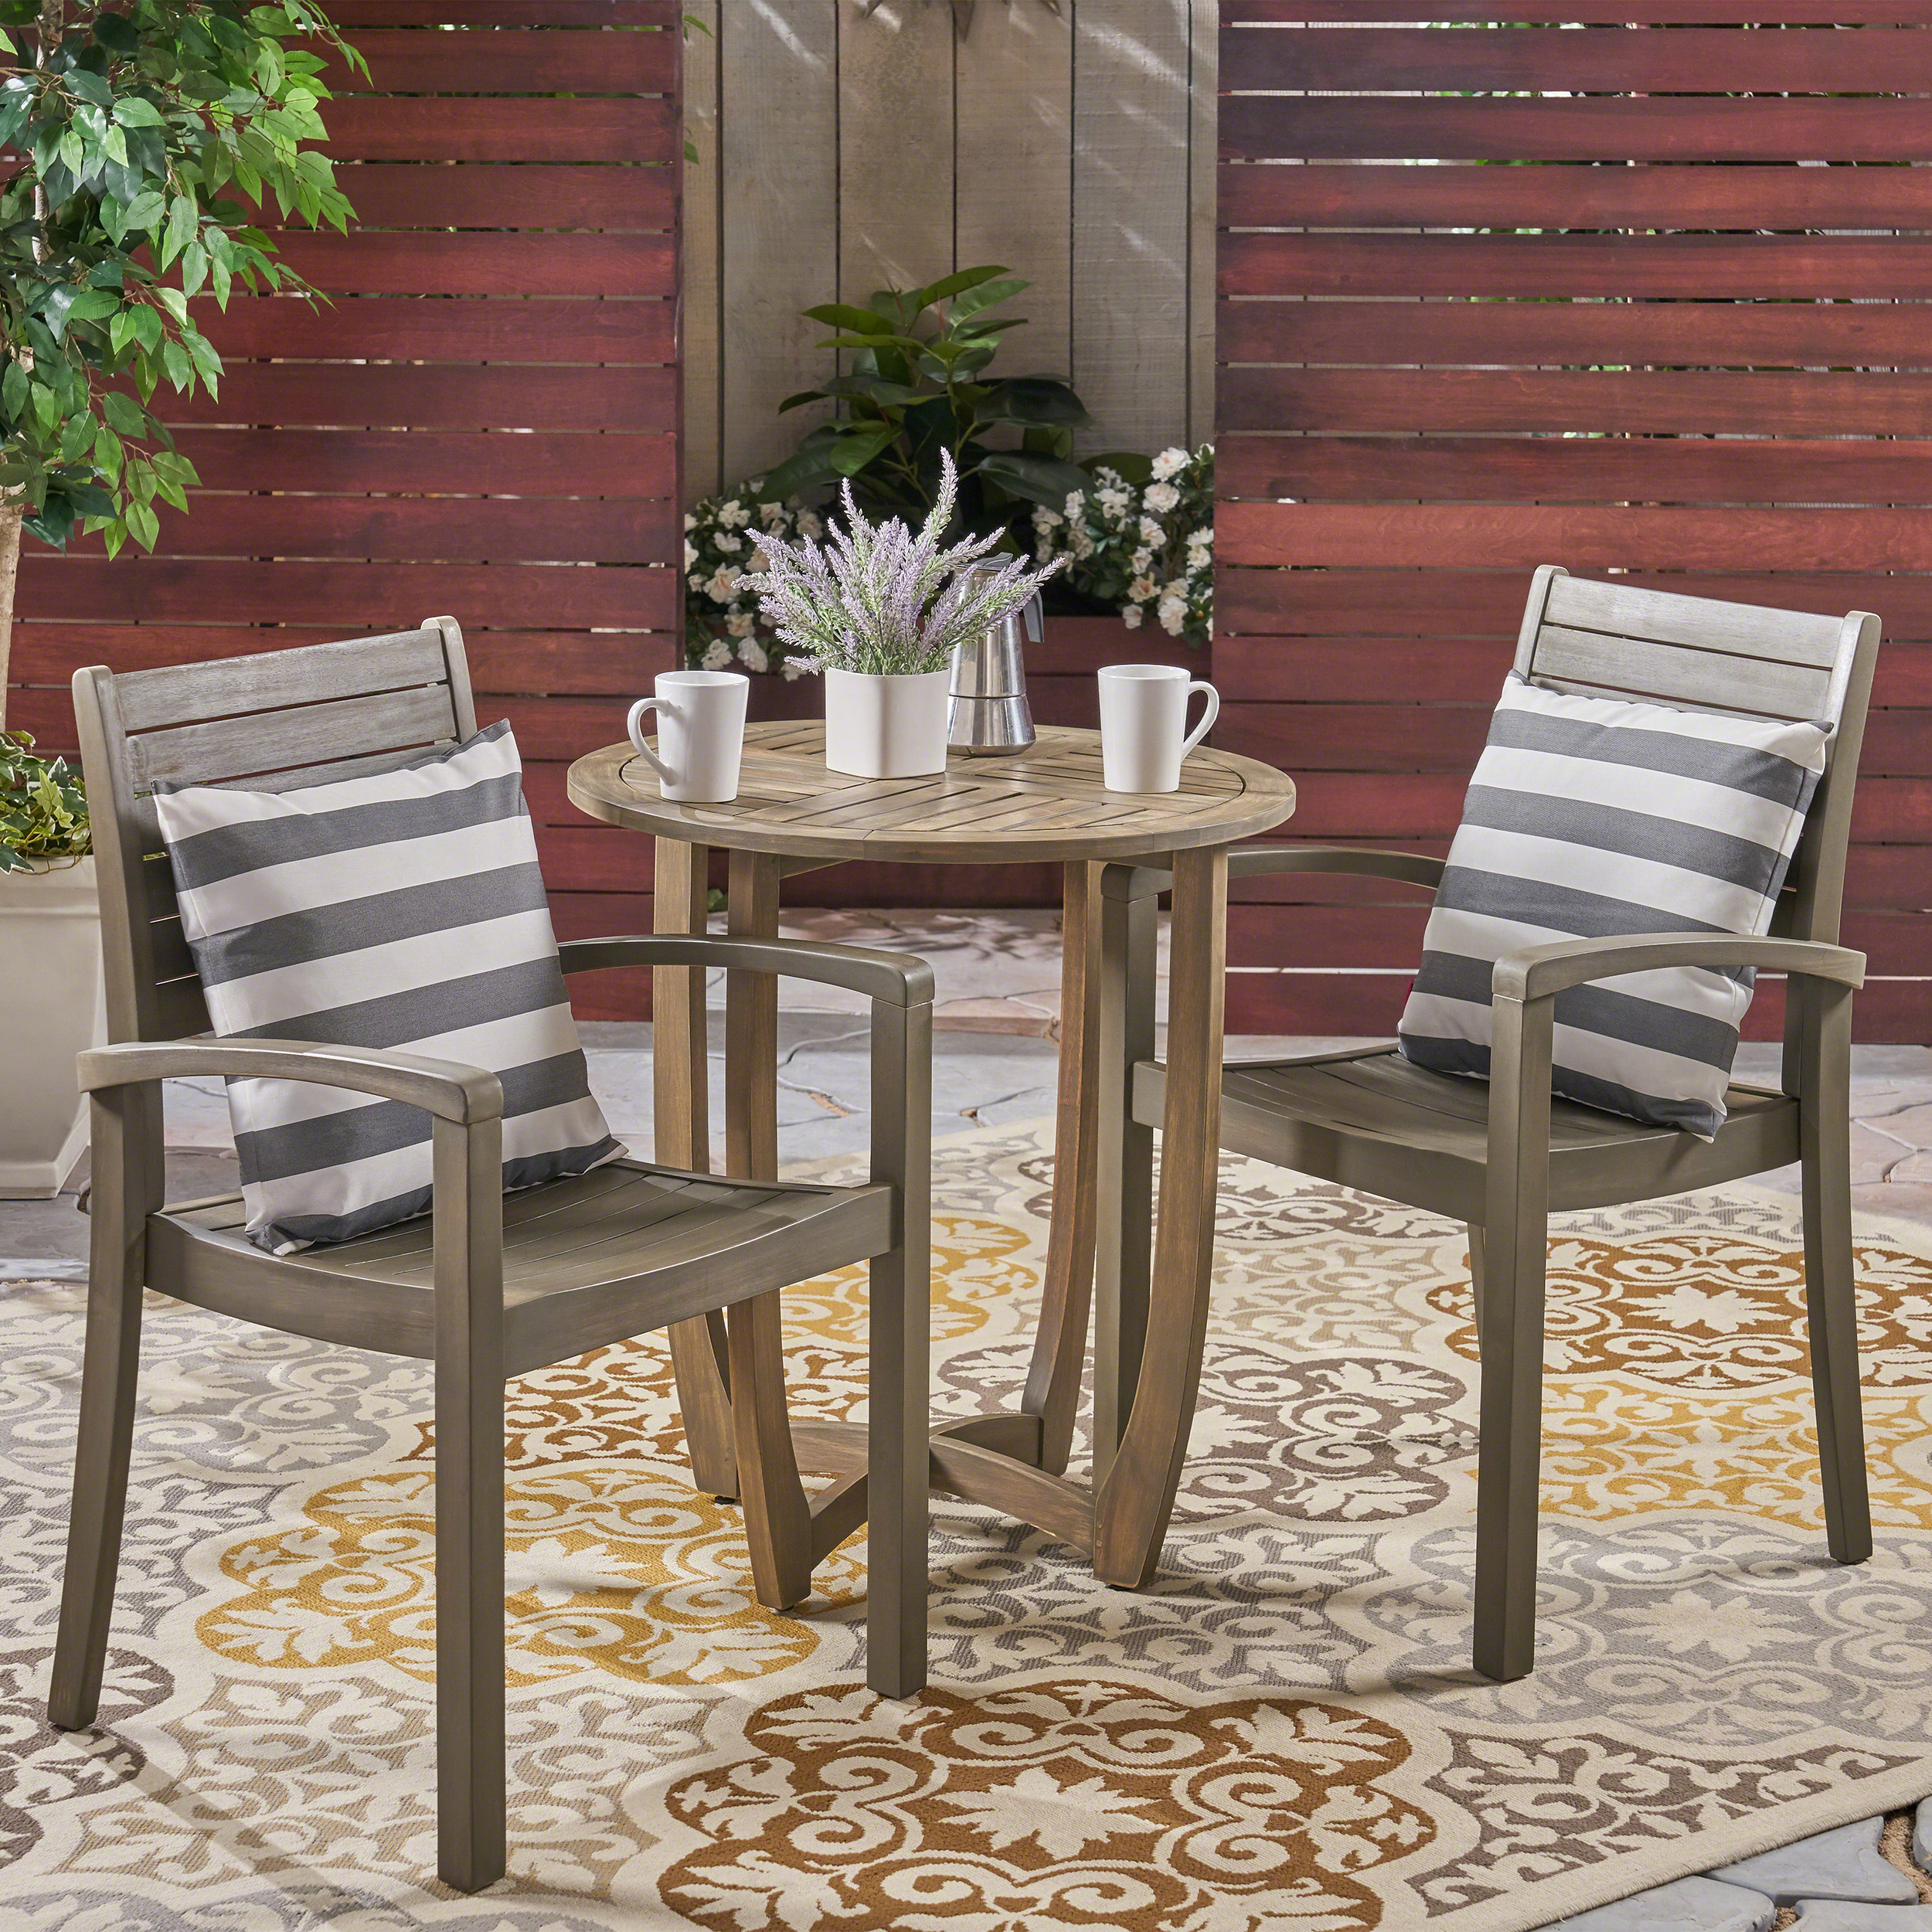 Wells Outdoor 3 Piece Acacia Wood Bistro Set, Gray